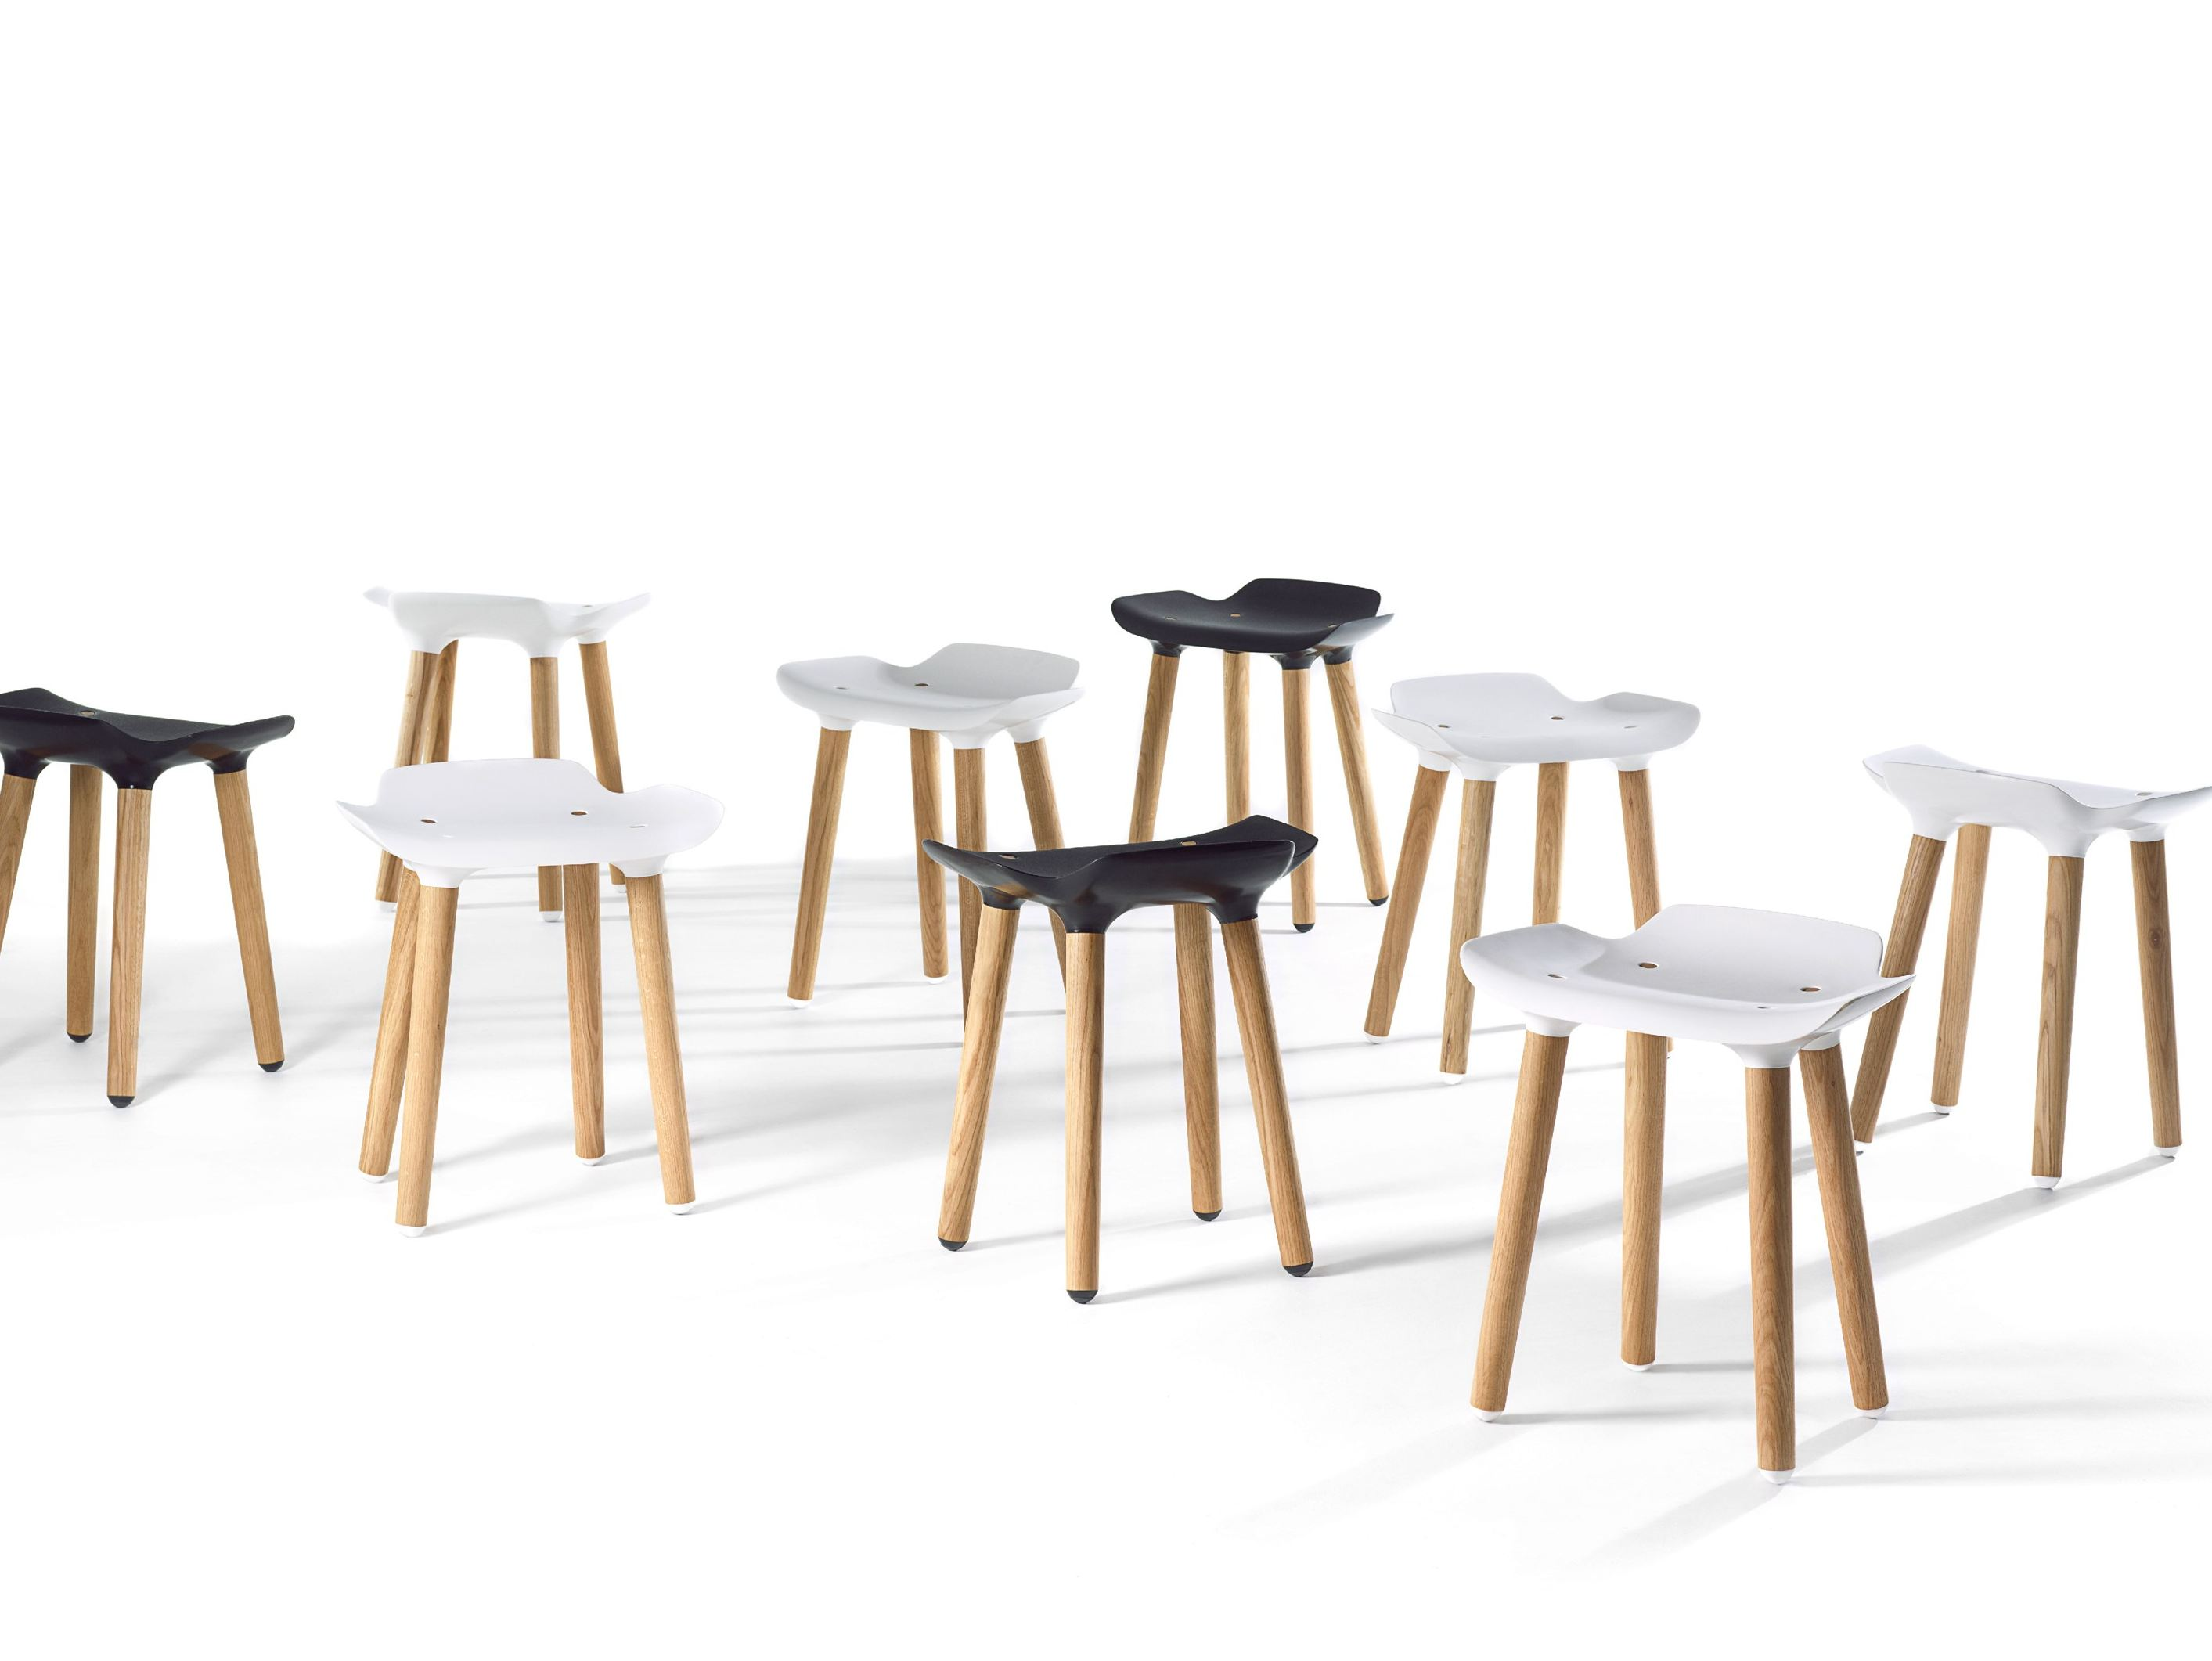 Low wooden stool PILOT STOOL By Quinze u0026 Milan design Patrick R&elotto  sc 1 st  Archiproducts & Low wooden stool PILOT STOOL By Quinze u0026 Milan design Patrick ... islam-shia.org